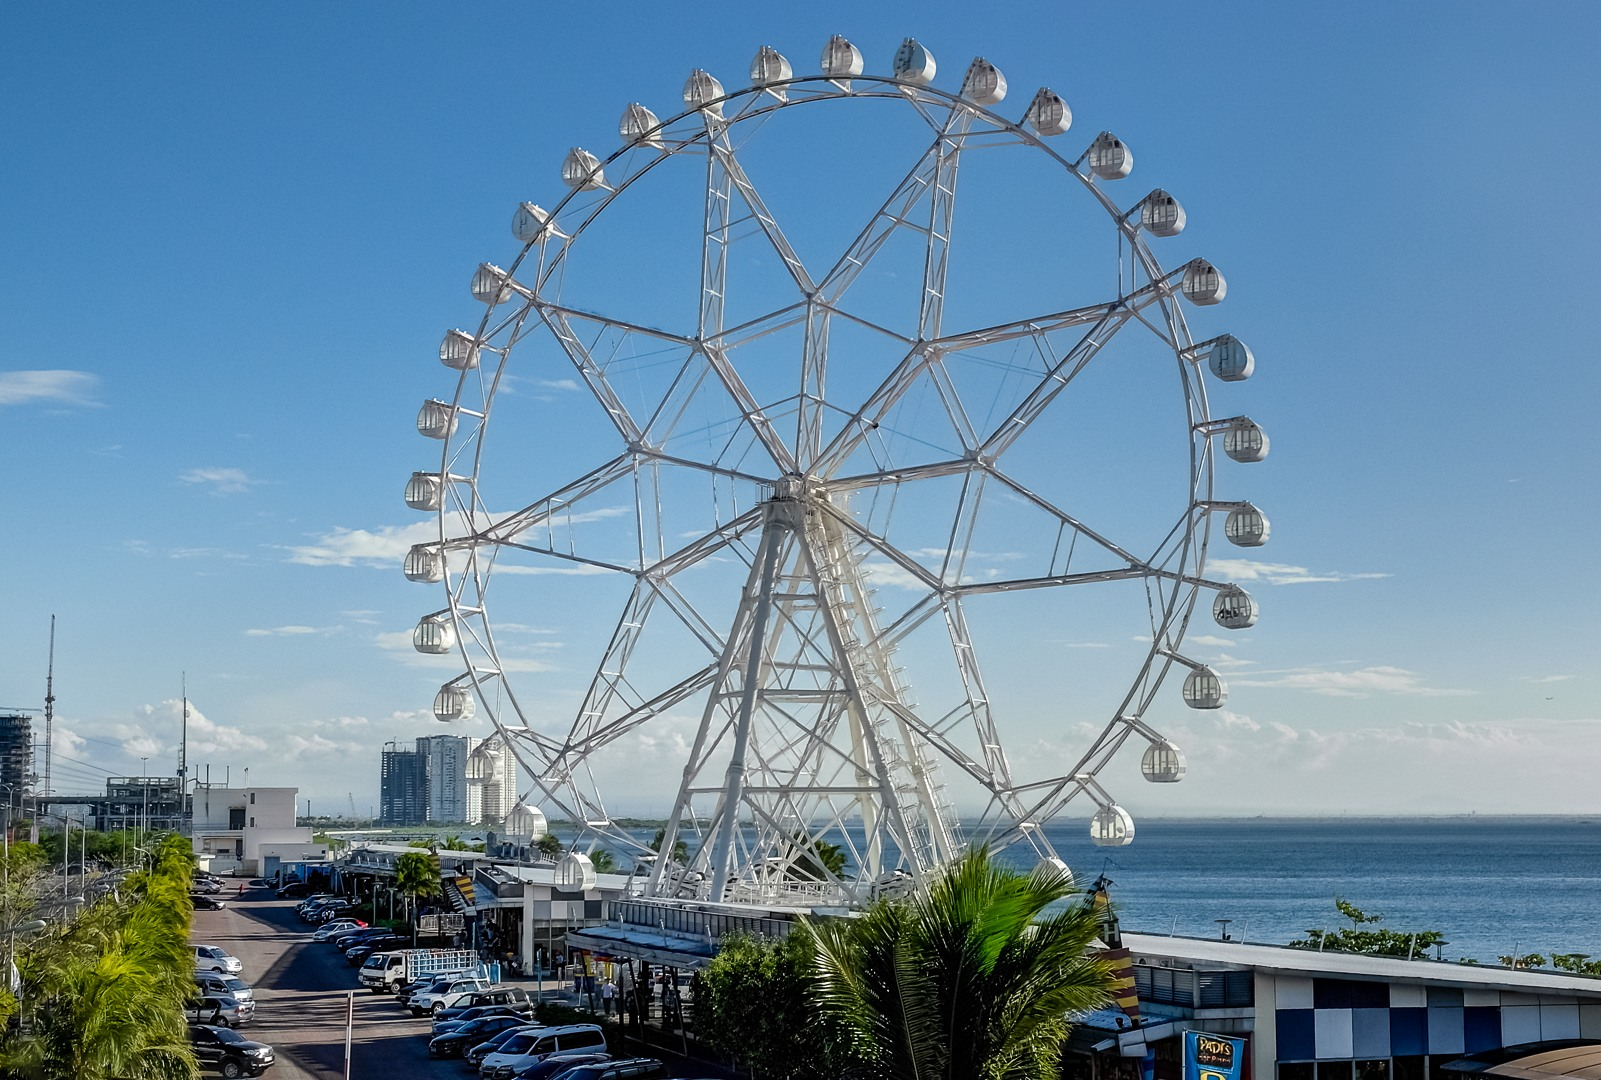 Ferris wheel next to the Mall Of Asia, Philippines